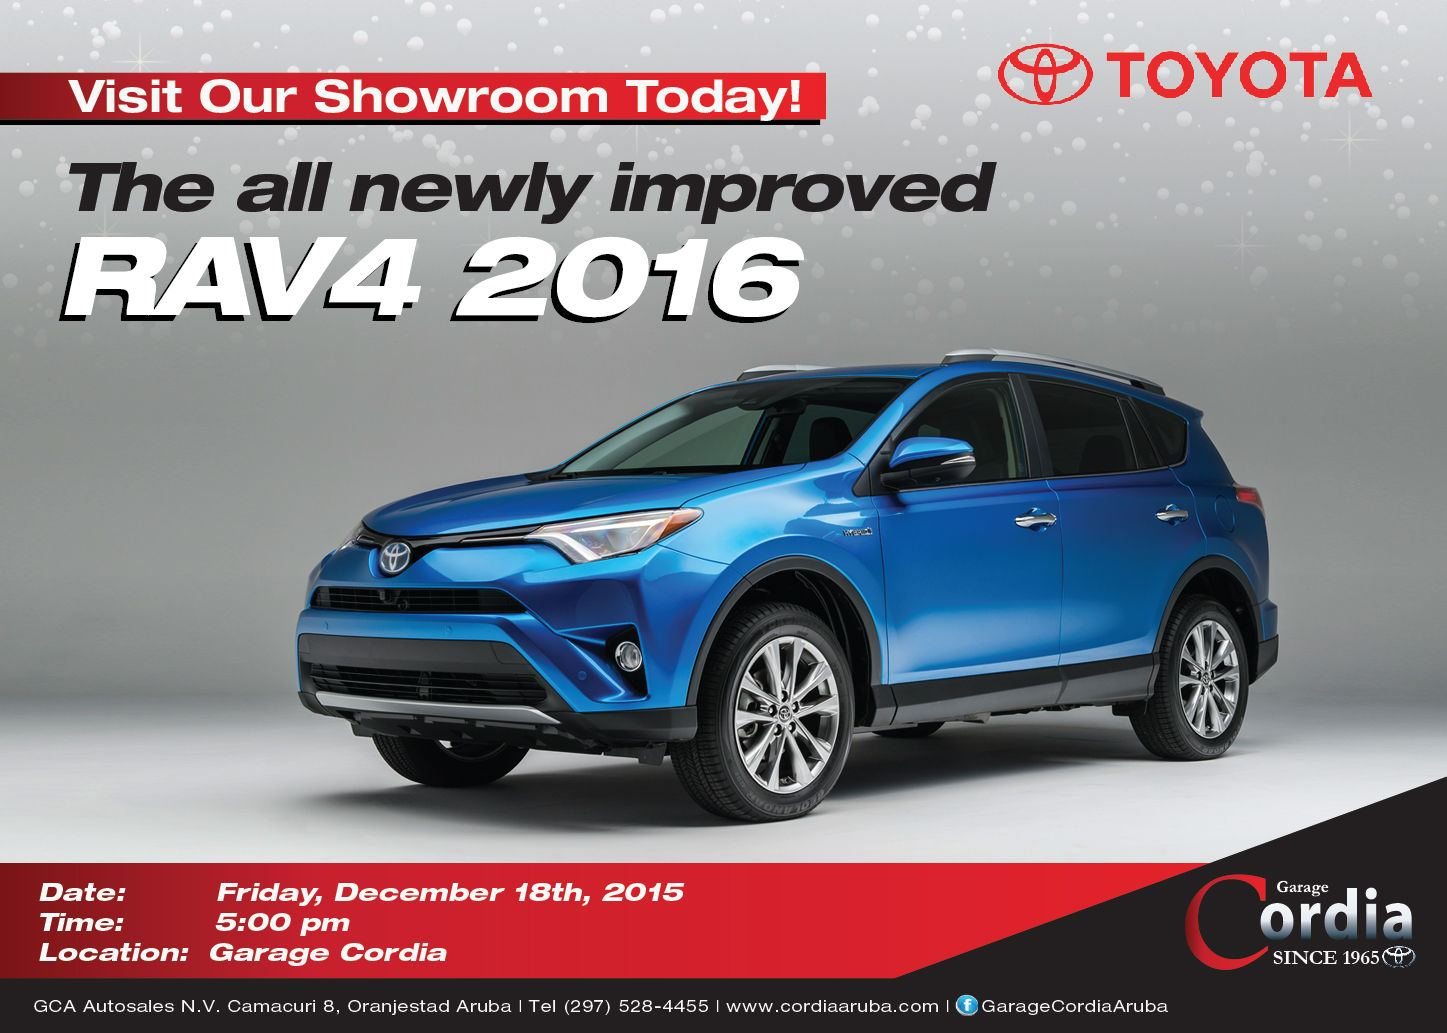 Unveiling of the All Newly Improved RAV4 2016